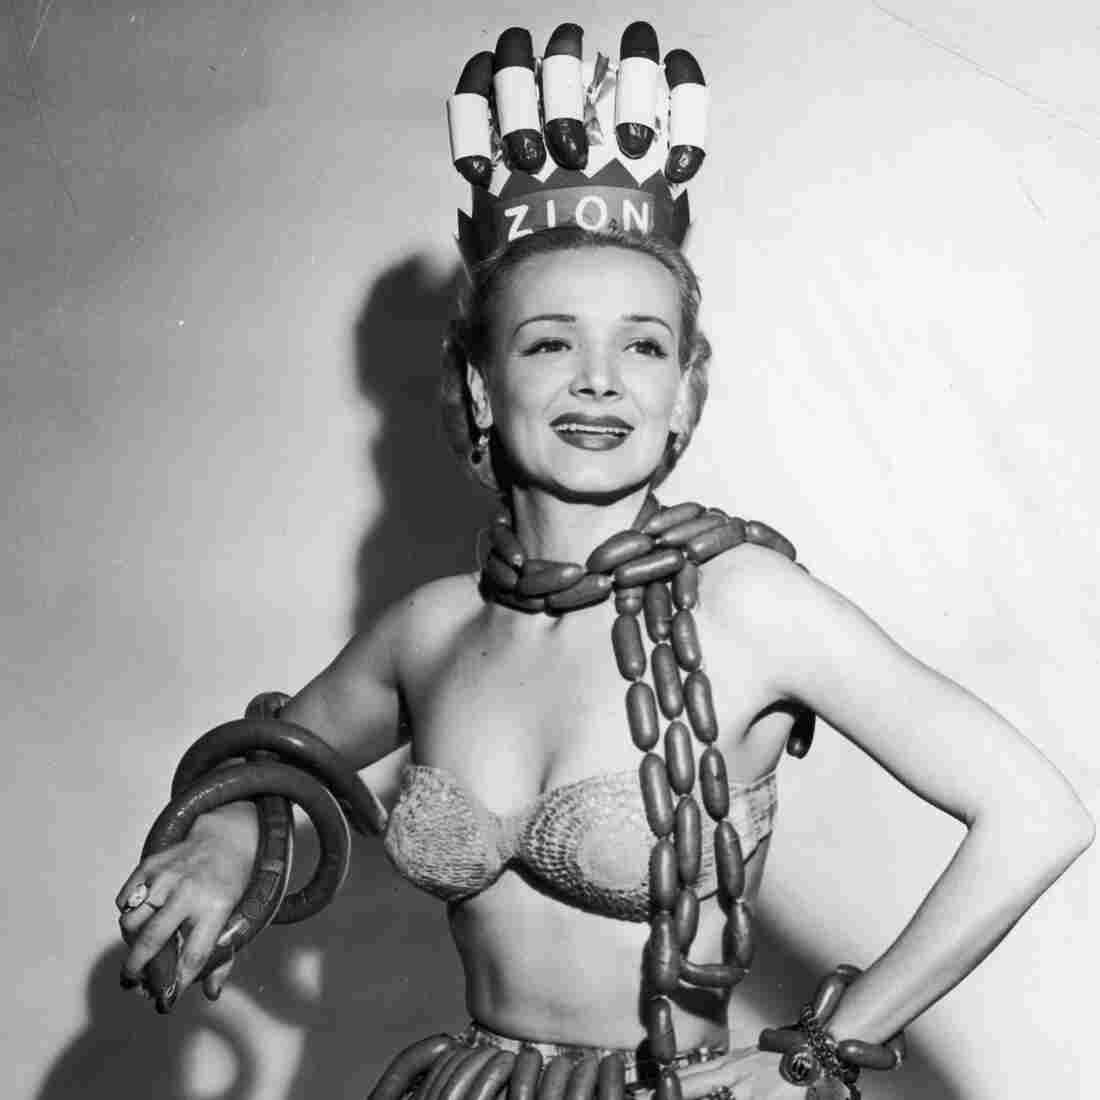 Geene Courtney models a scarf, skirt, bracelets and a crown made from hot dogs, frankfurters and kielbasa in her role as Queen of National Hot Dog Week, circa 1955.